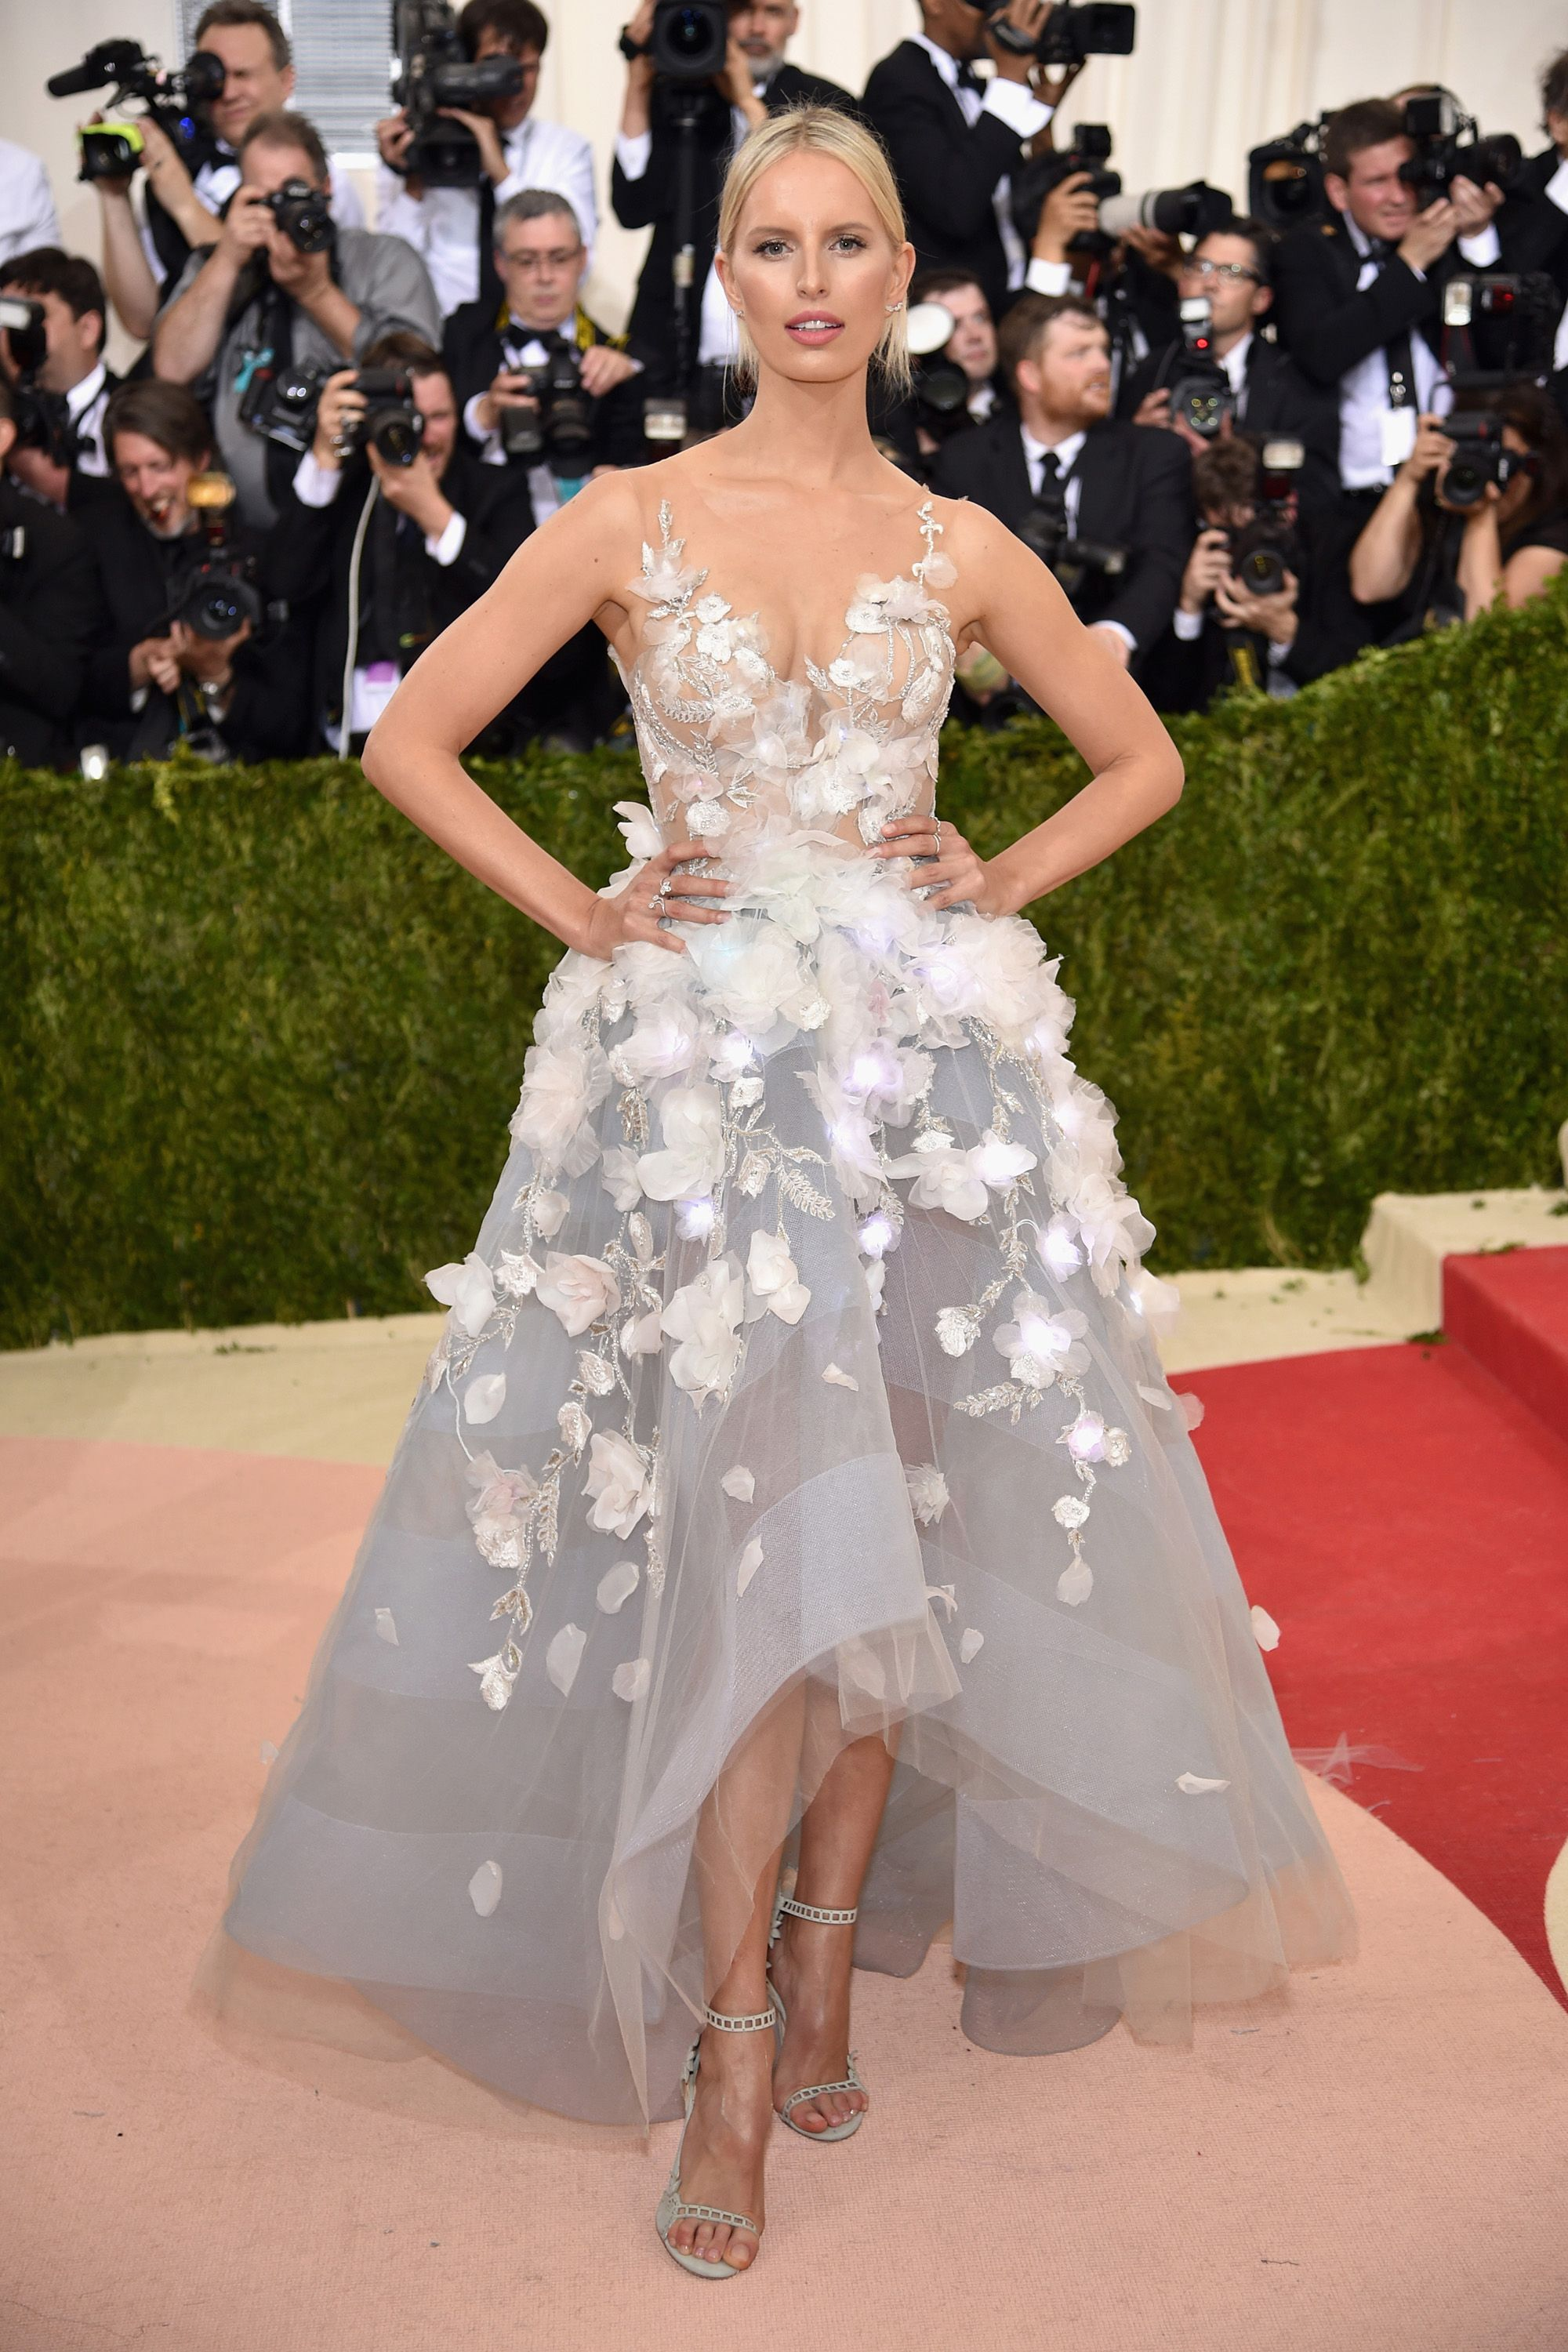 Red Carpet Dresses at Met Gala 2016 - Dresses and Gowns From the ...